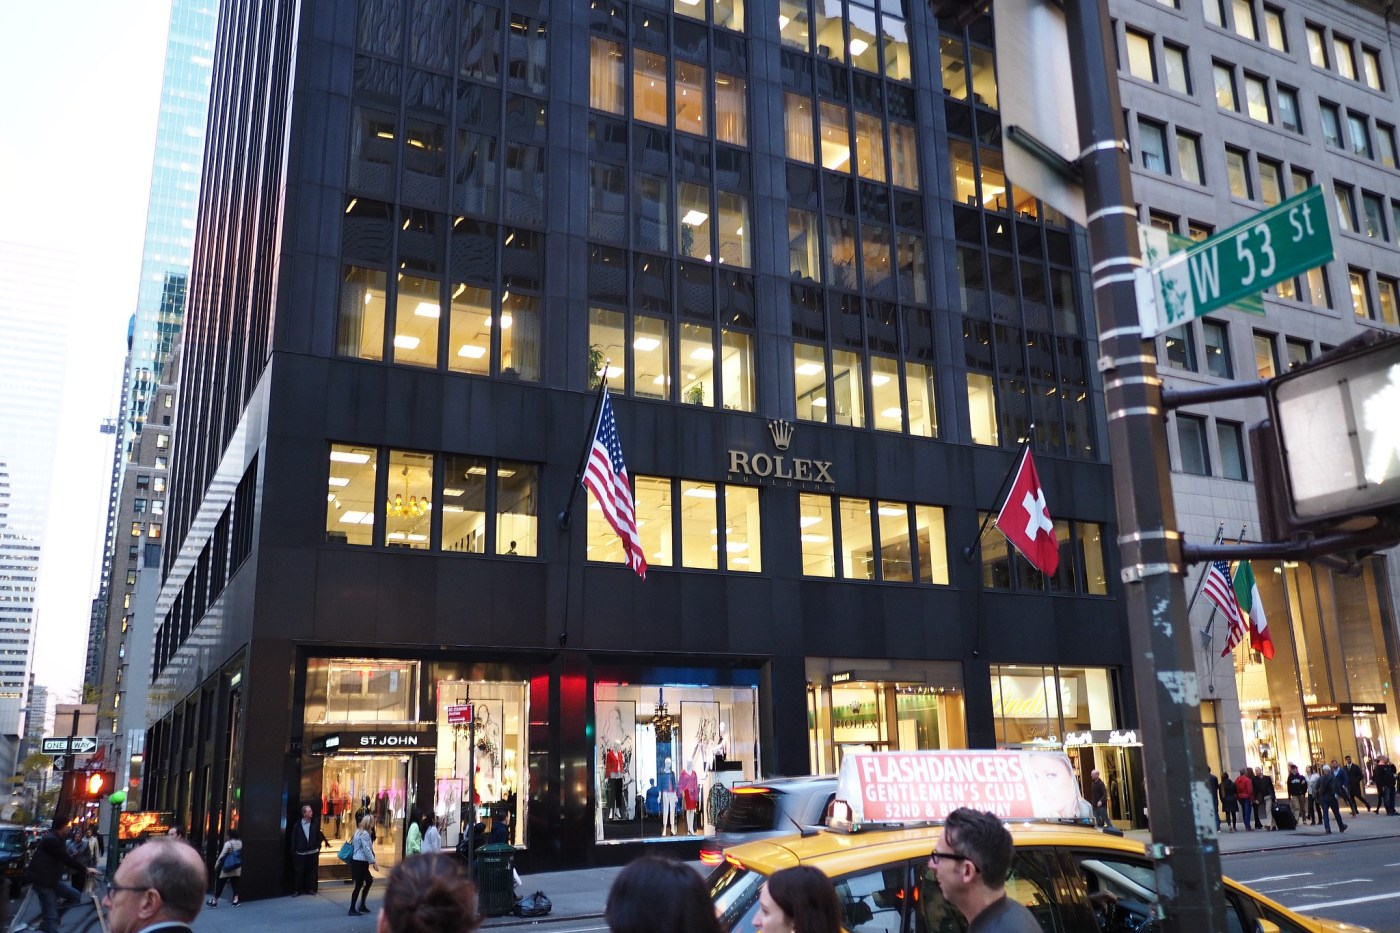 Rolex current Headquarters at 665 Fifth Avenue